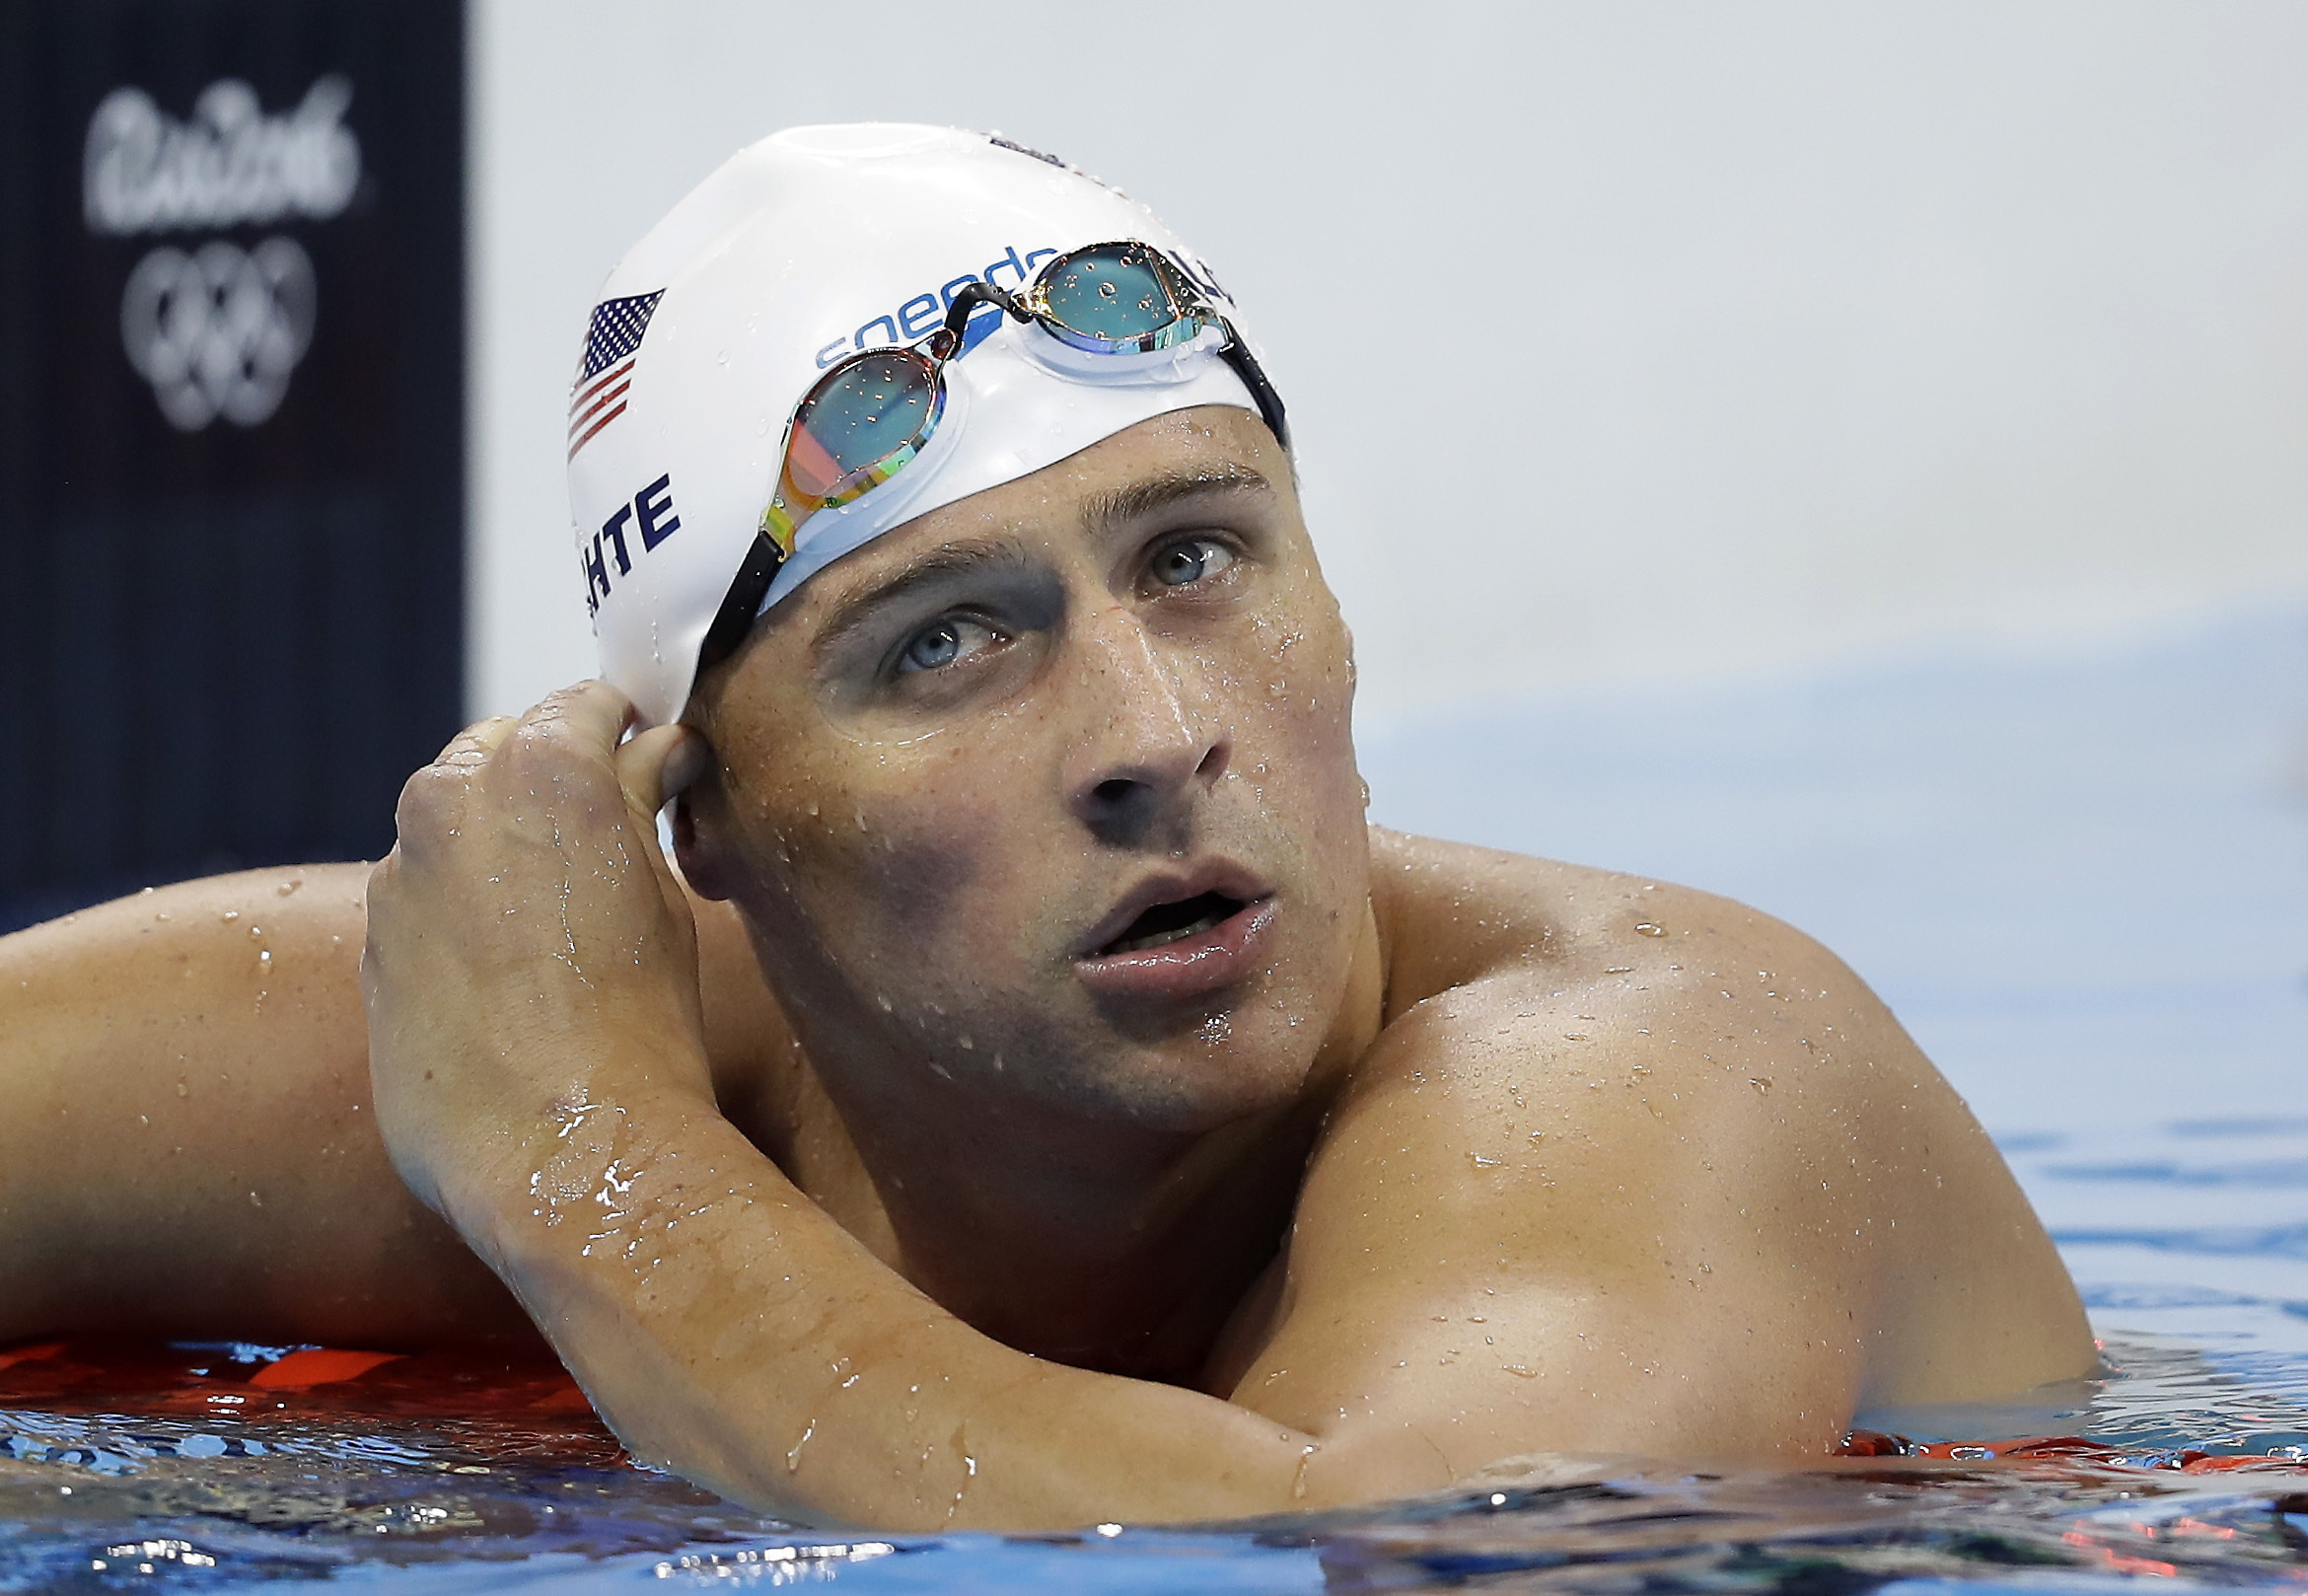 FILE - In this Tuesday, Aug. 9, 2016, file photo, United States' Ryan Lochte checks his time in a men's 4x200-meter freestyle heat at the 2016 Summer Olympics, in Rio de Janeiro, Brazil. Lochte is banned from swimming through next June and will forfeit $1